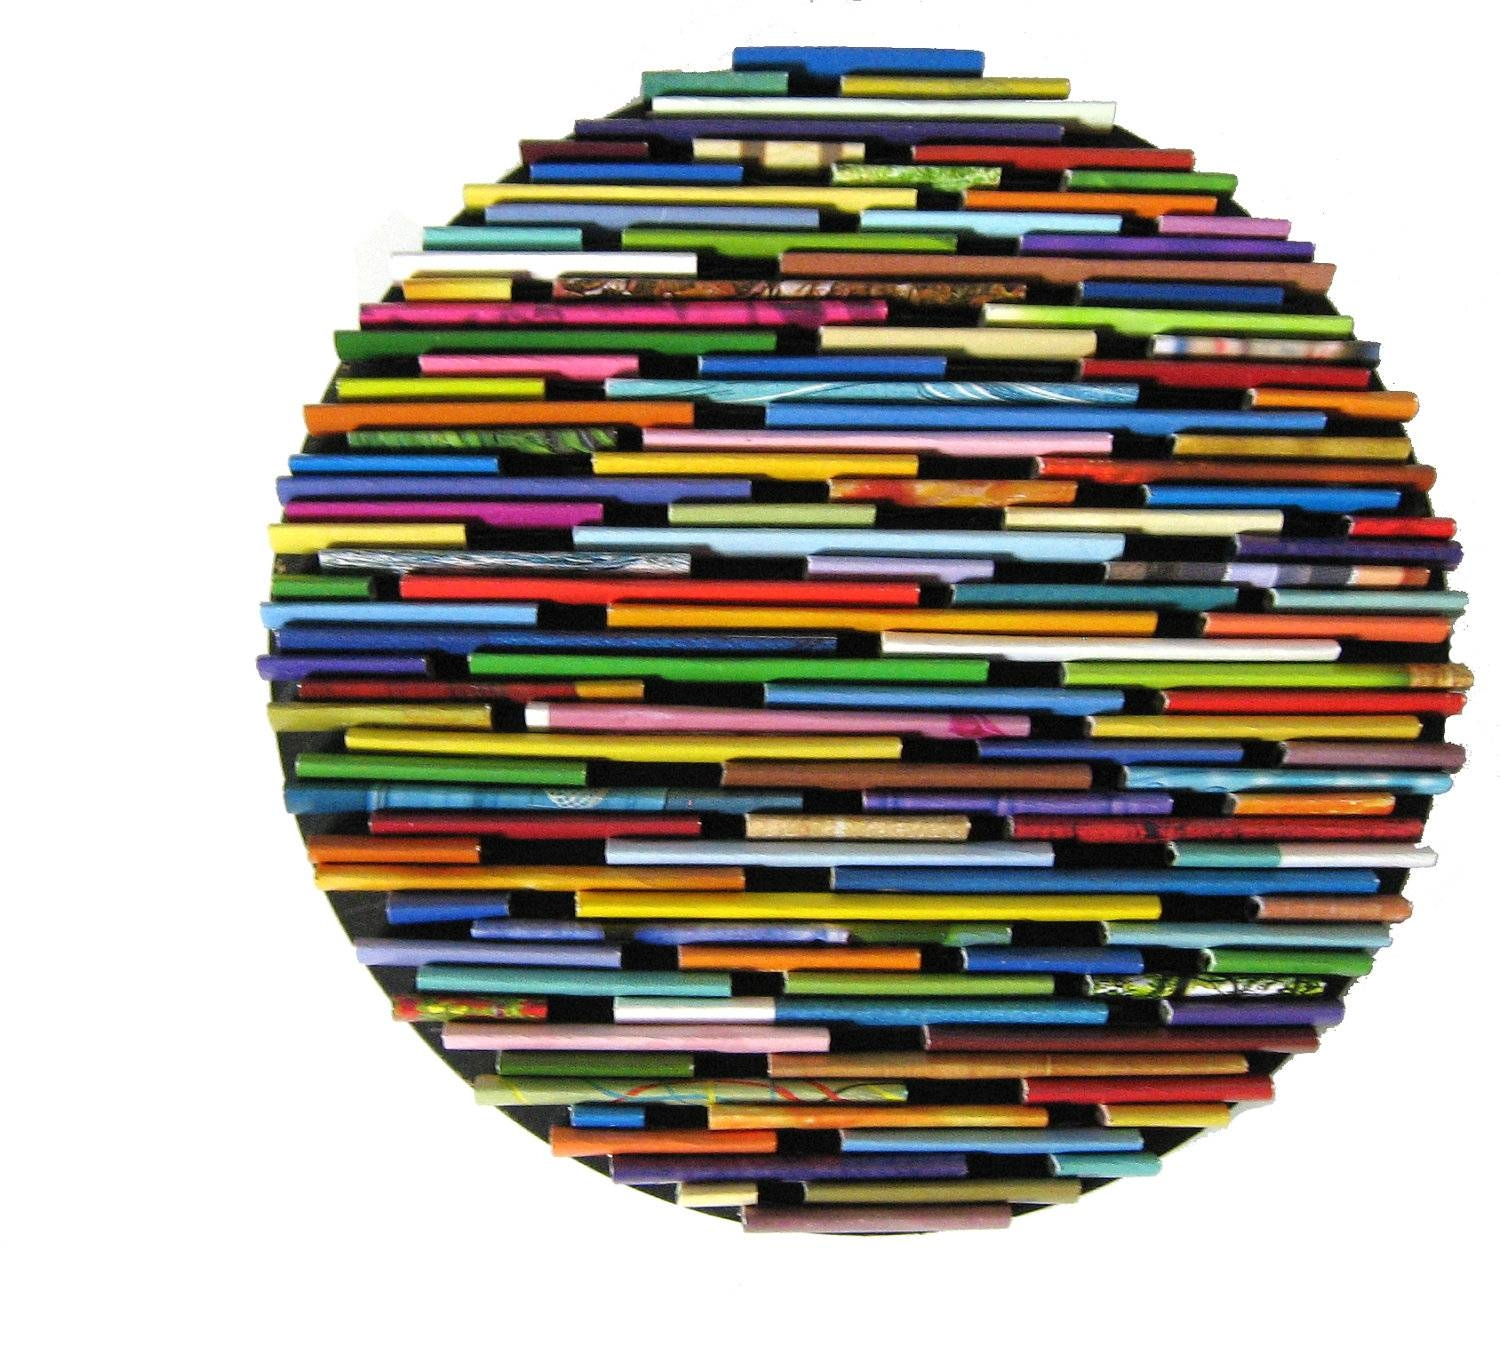 Round Wall Art Made From Recycled Magazines Colorful Unique Intended For Most Up To Date Recycled Wall Art (Gallery 8 of 30)